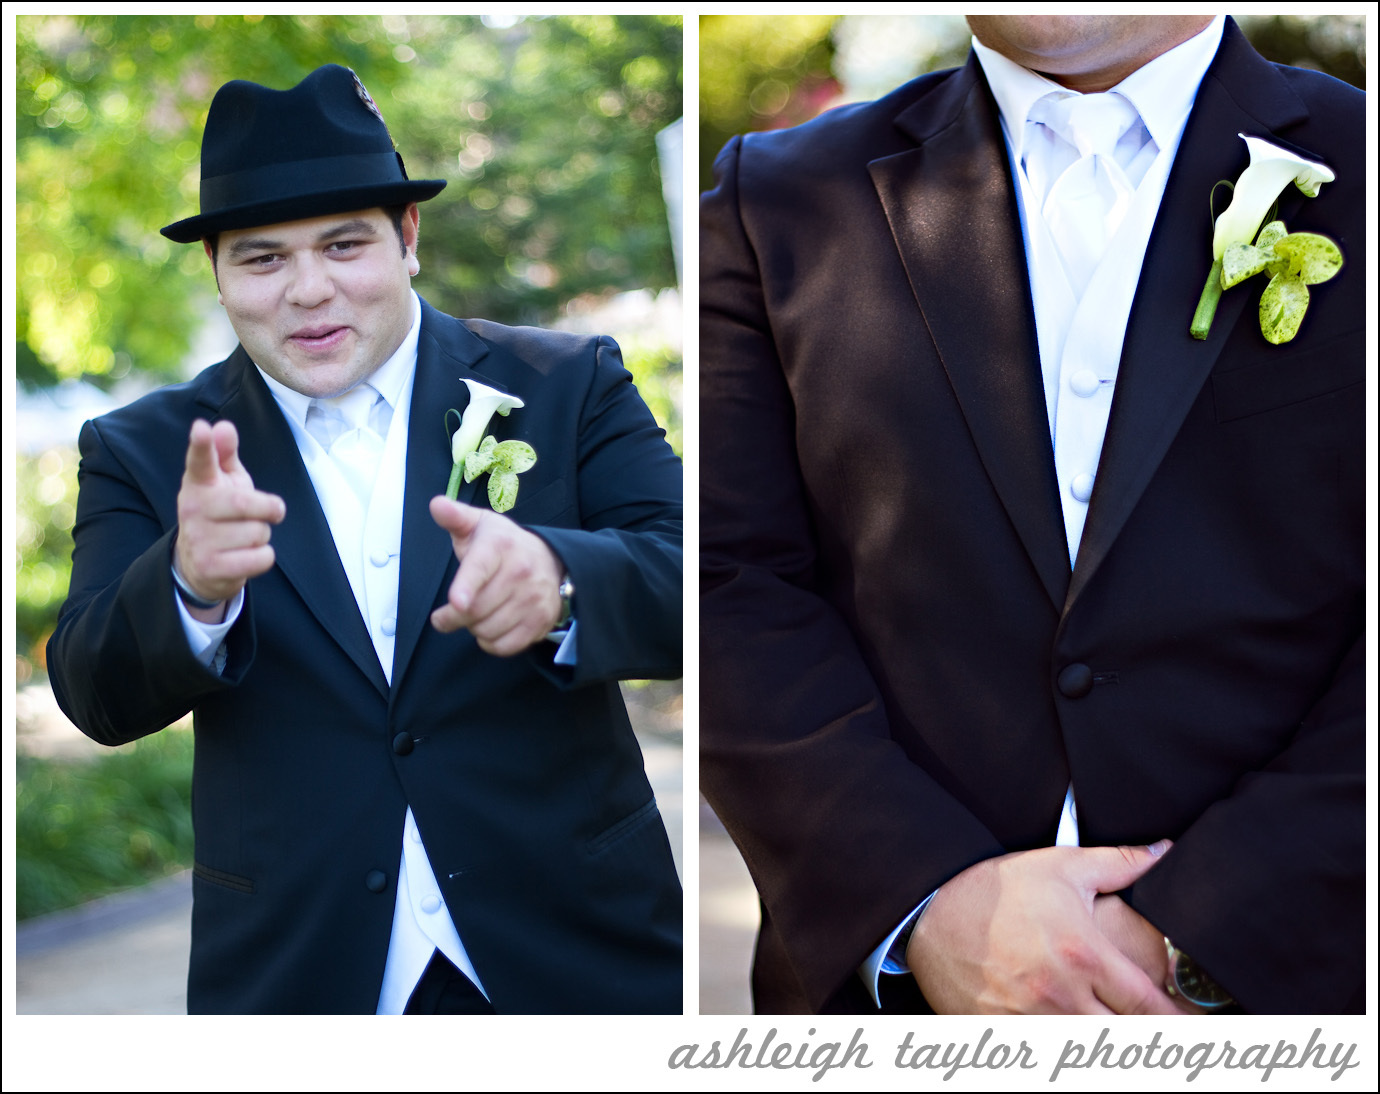 Groom, Wedding, And, Club, Lake, Boutinierre, Malibou, Mountain, Ashleigh taylor photography